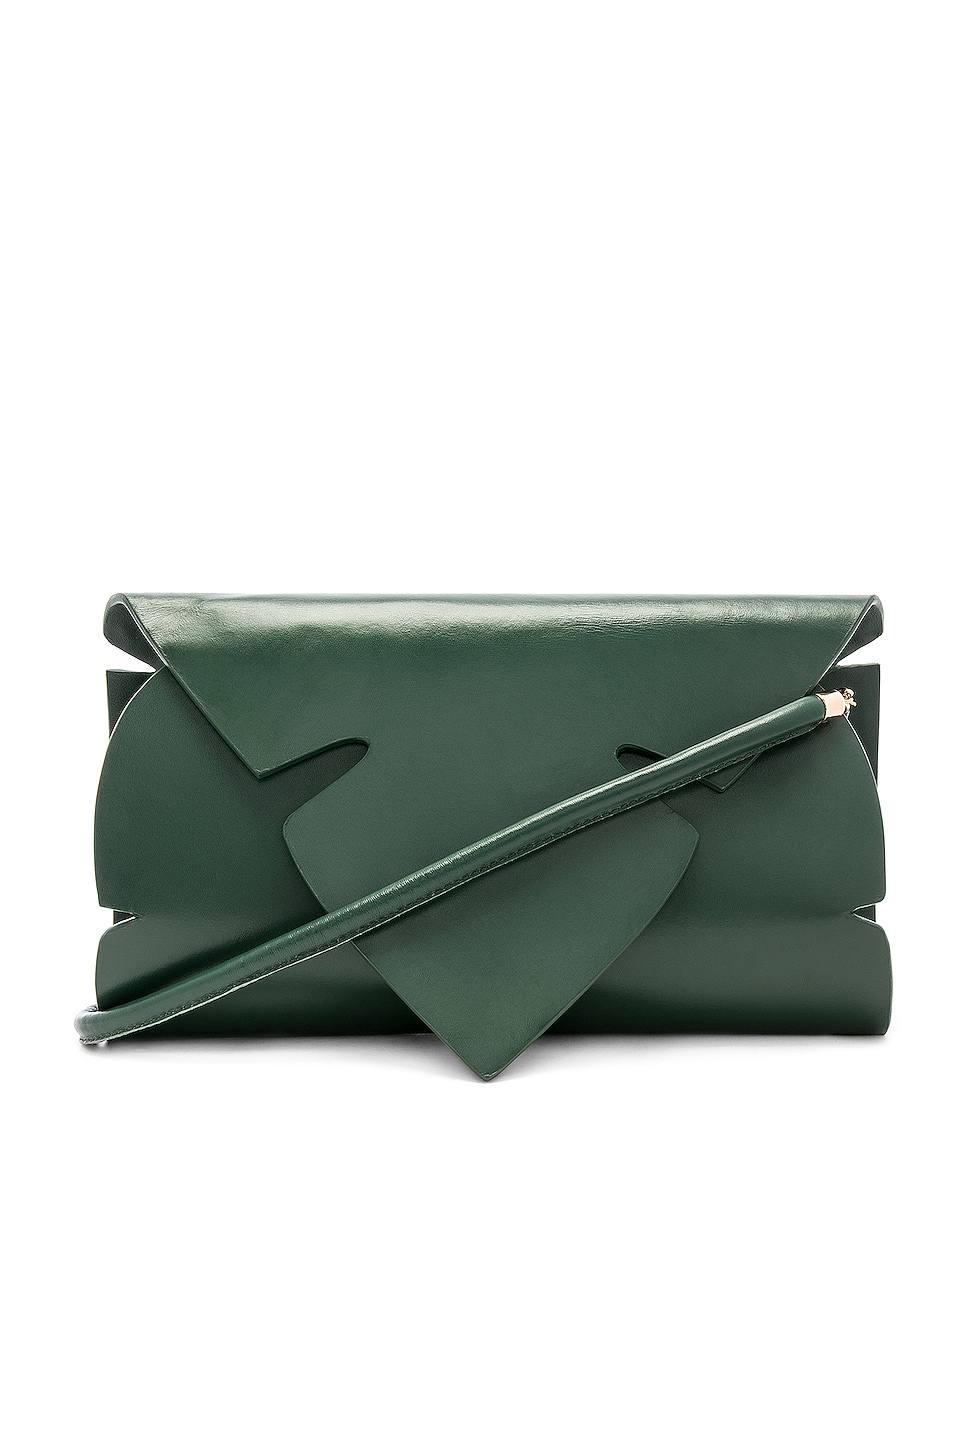 House of Harlow 1960 x REVOLVE Alorha Clutch in Green